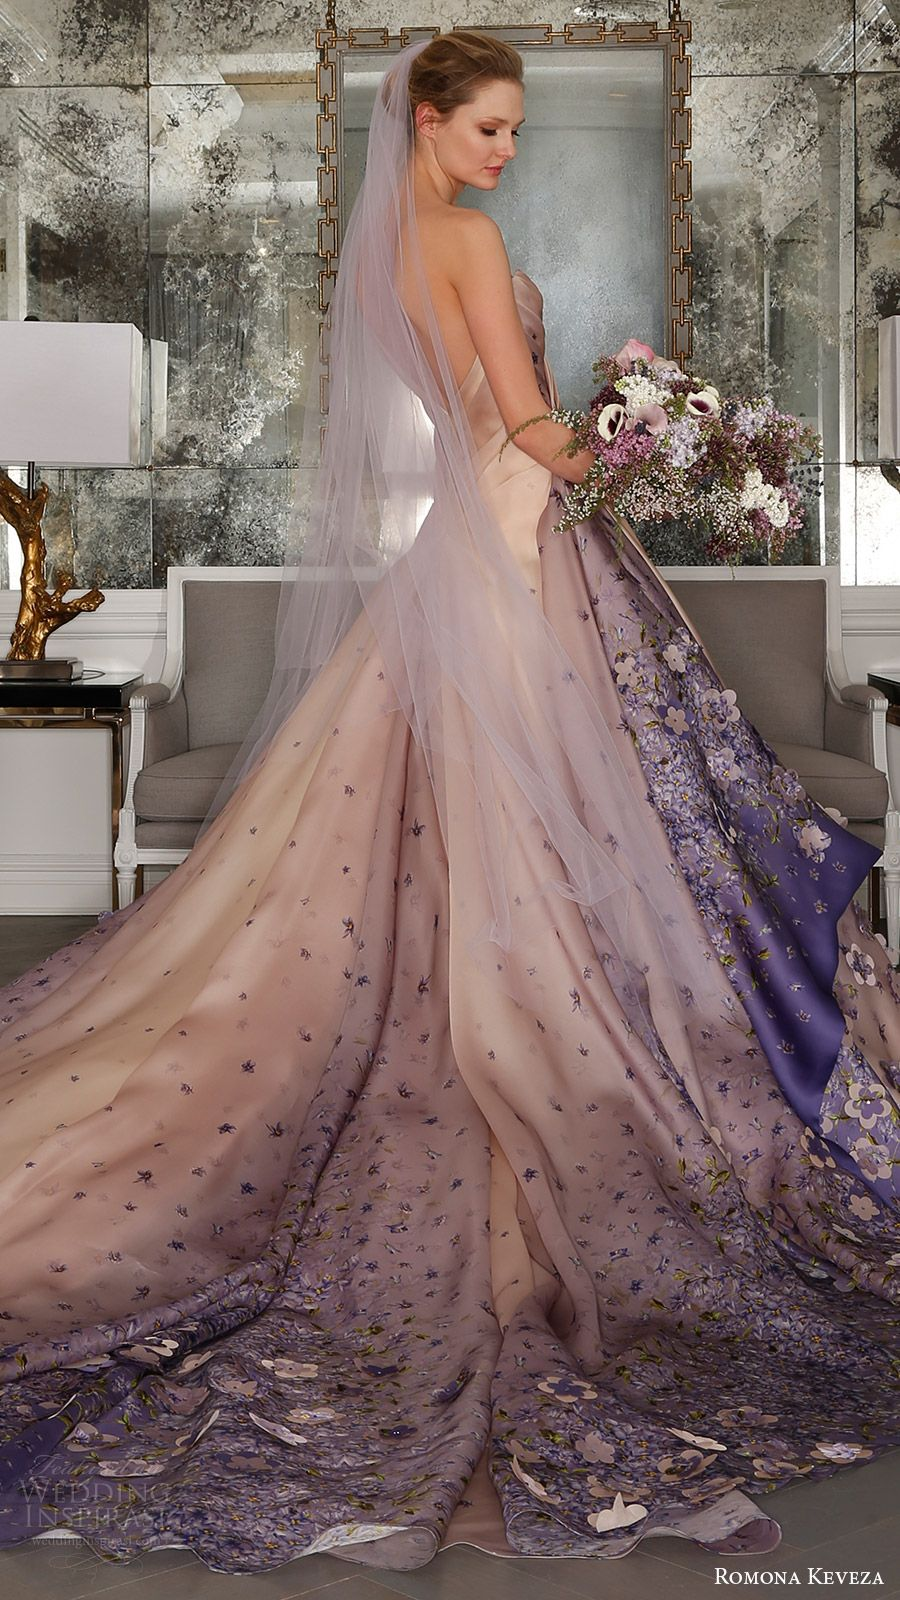 3b3f4445729 romona keveza bridal spring 2017 one shoulder sweetheart silk organza ball gown  wedding dress (rk7413) bv blush color violet print